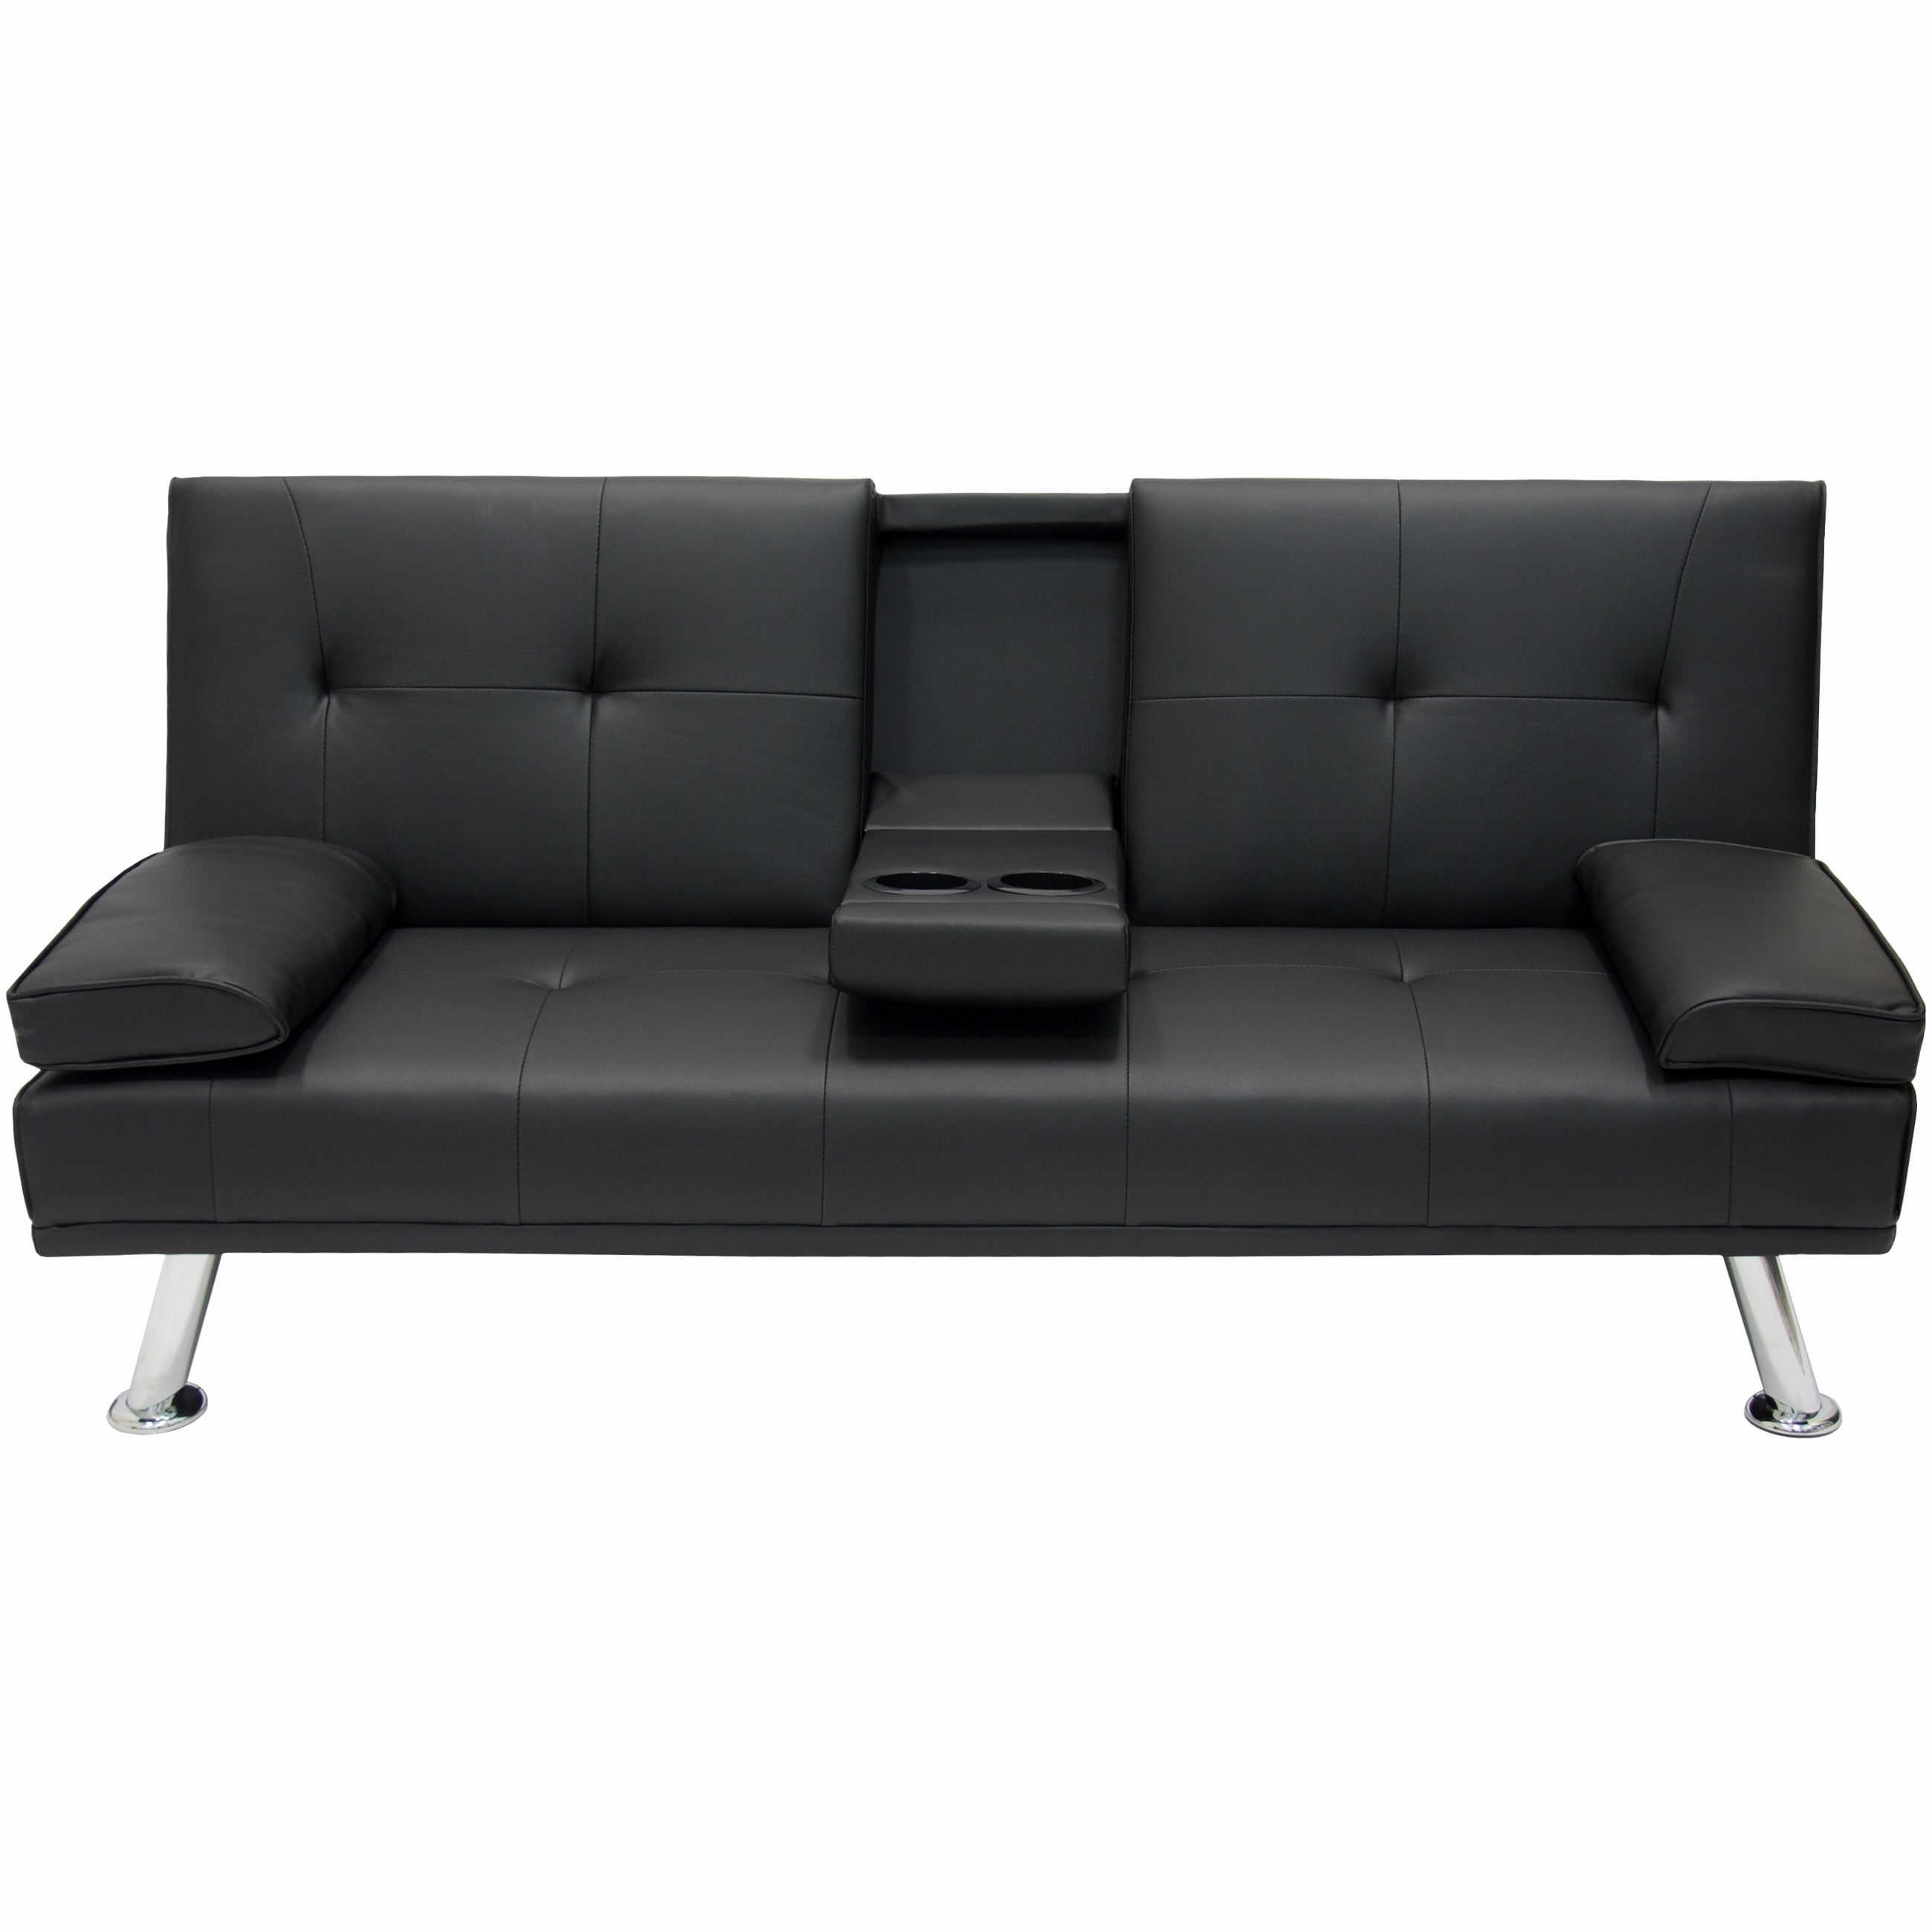 Most Popular Fresh Newport 3 Seater Sofa Bed With Chaise 2018 – Couches And Throughout Newport Sofas (View 11 of 20)